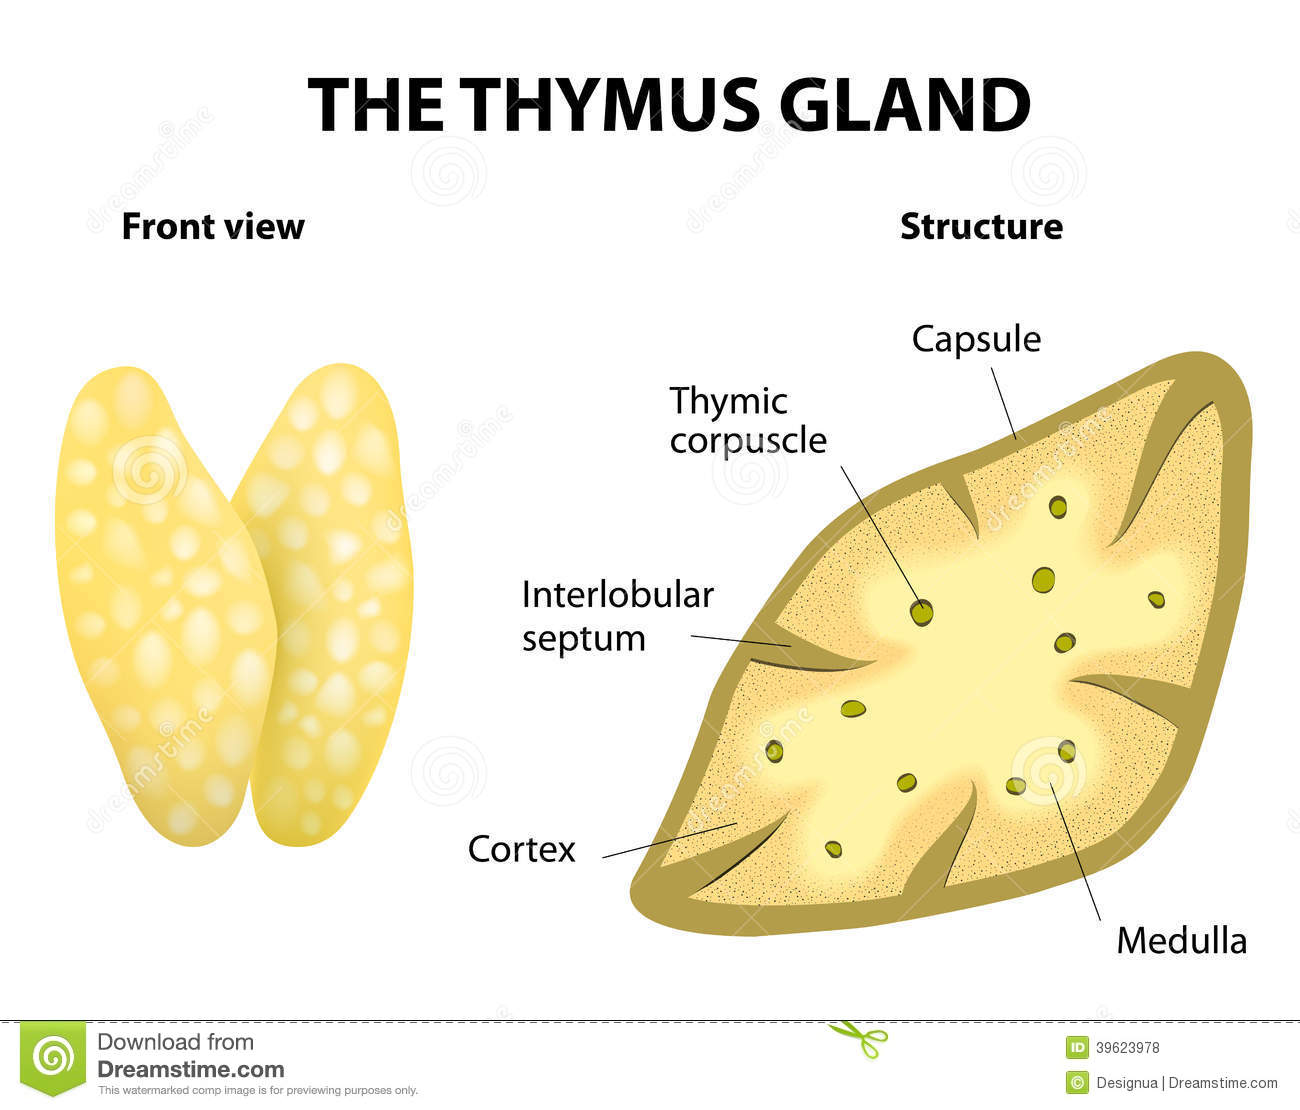 Royalty Free Stock Photos Thumys Gland Anatomy Thymus Structure Vector Diagram Lies Thoracic Cavity Just Above Heart Secretes Thymosin Image39623978